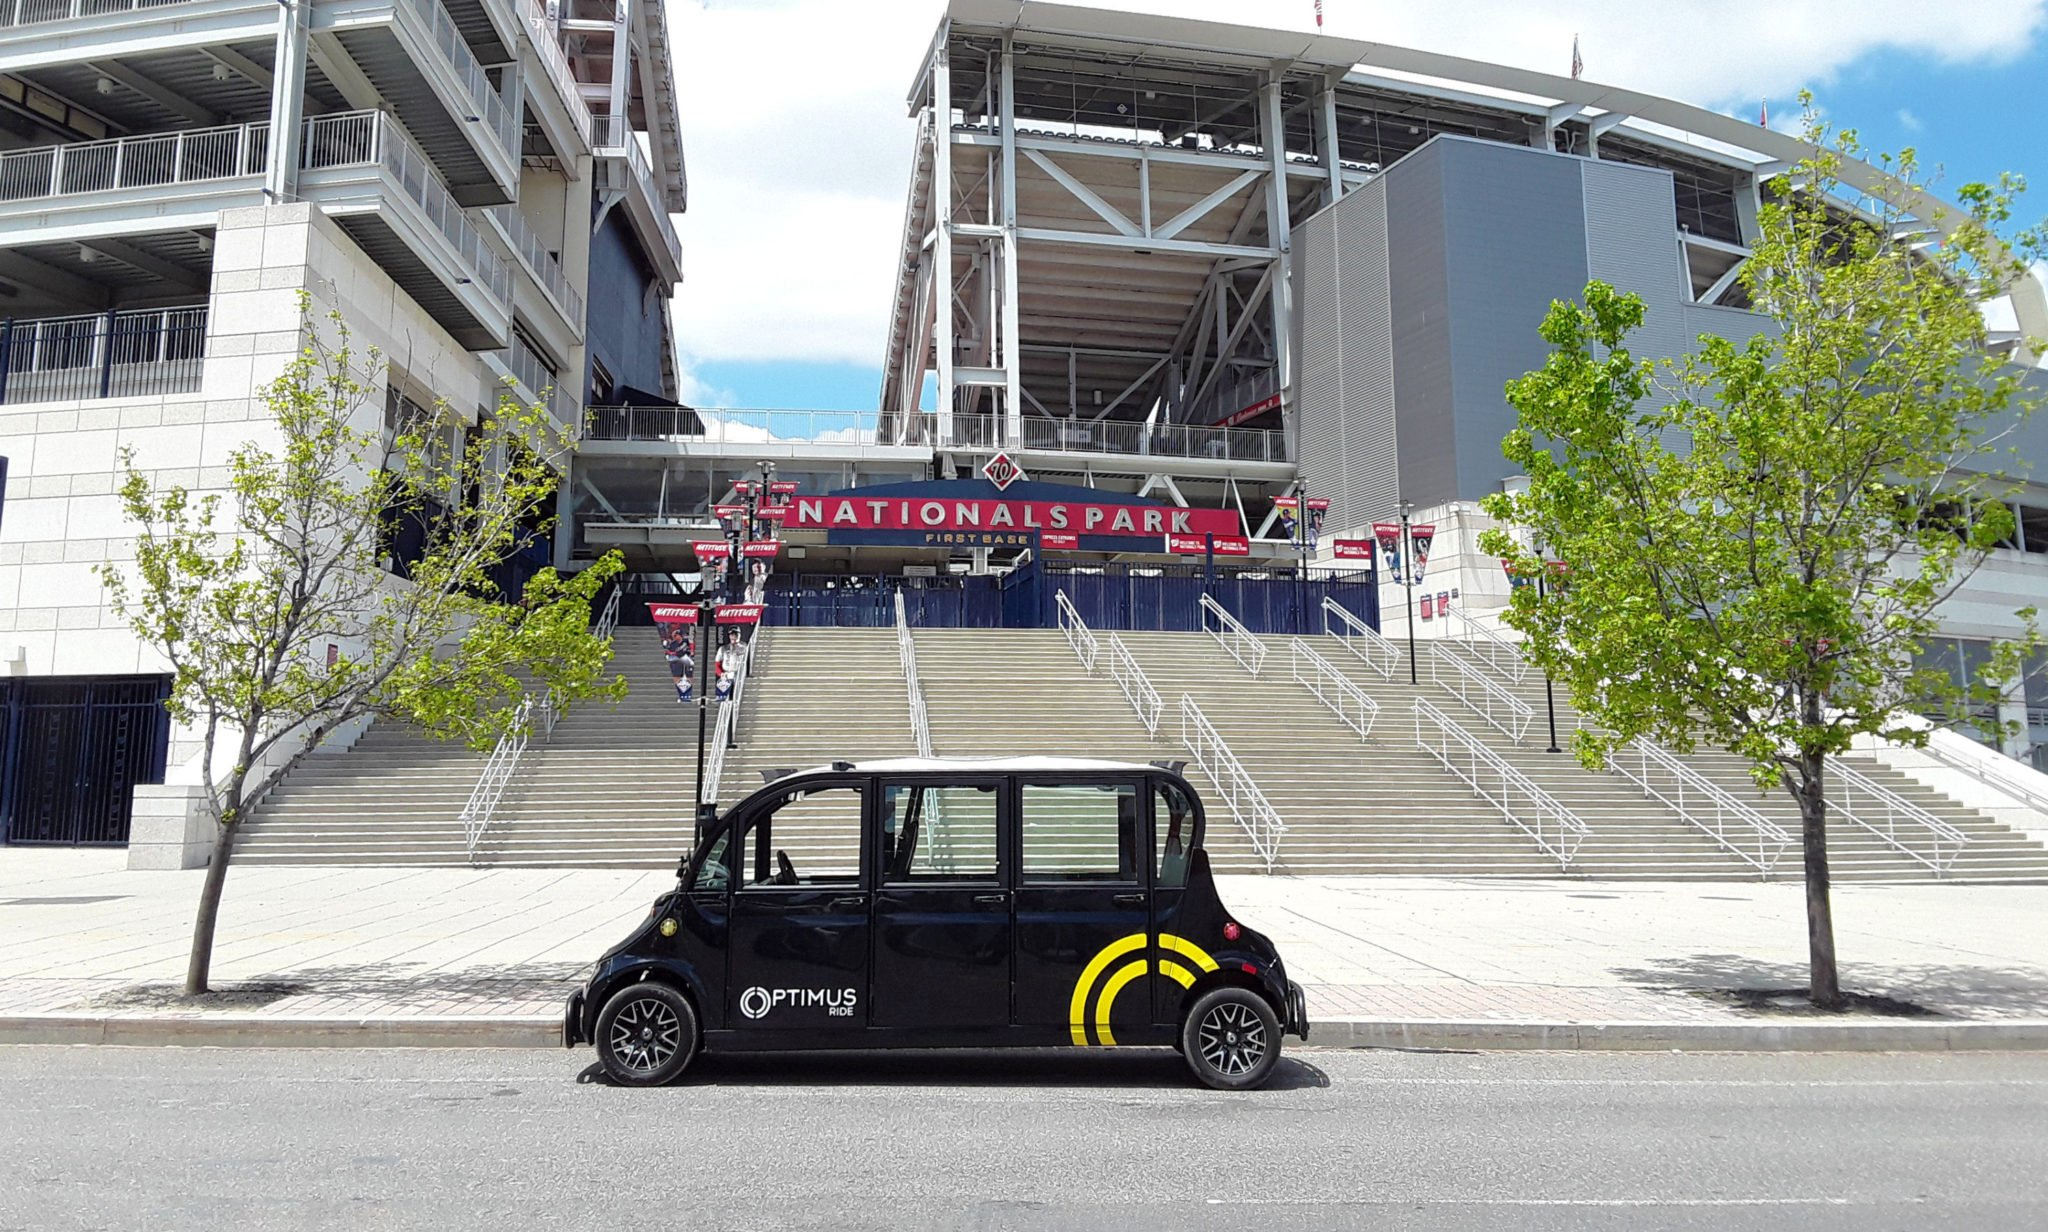 The car in front of Nats Park. Photo courtesy of the Yards and Optimus Ride.